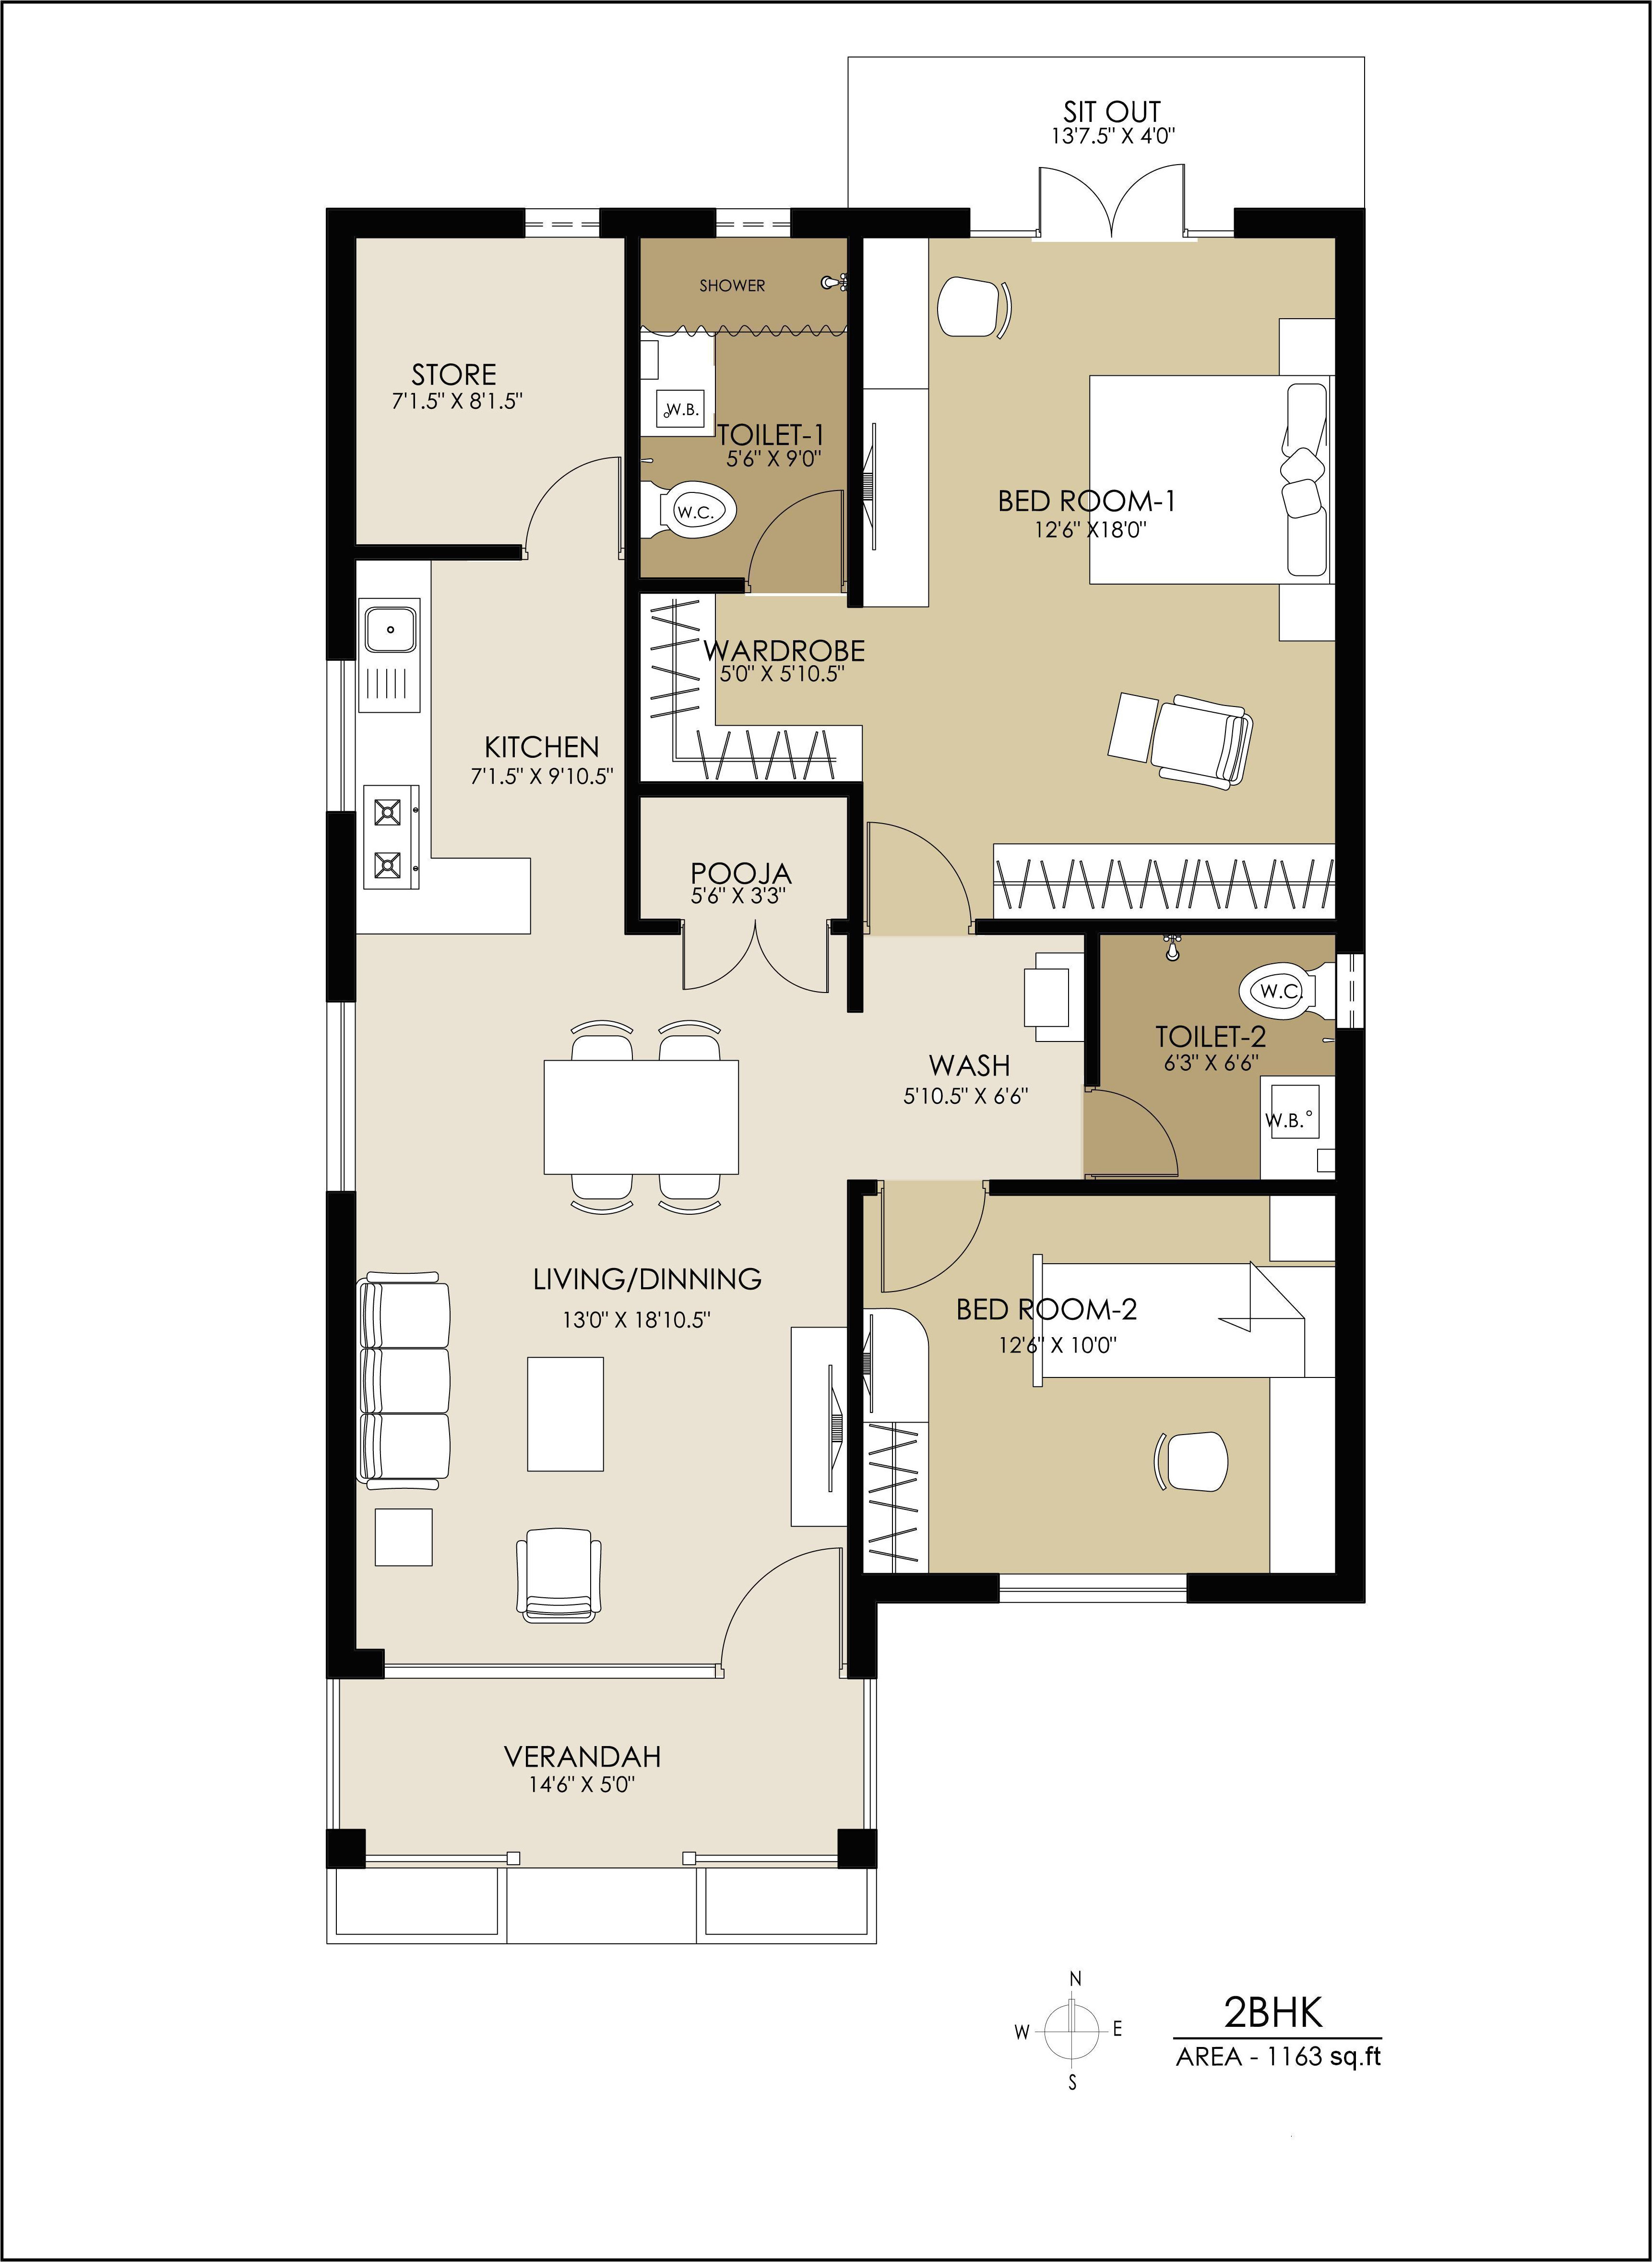 property plans for 2bhk home houzone